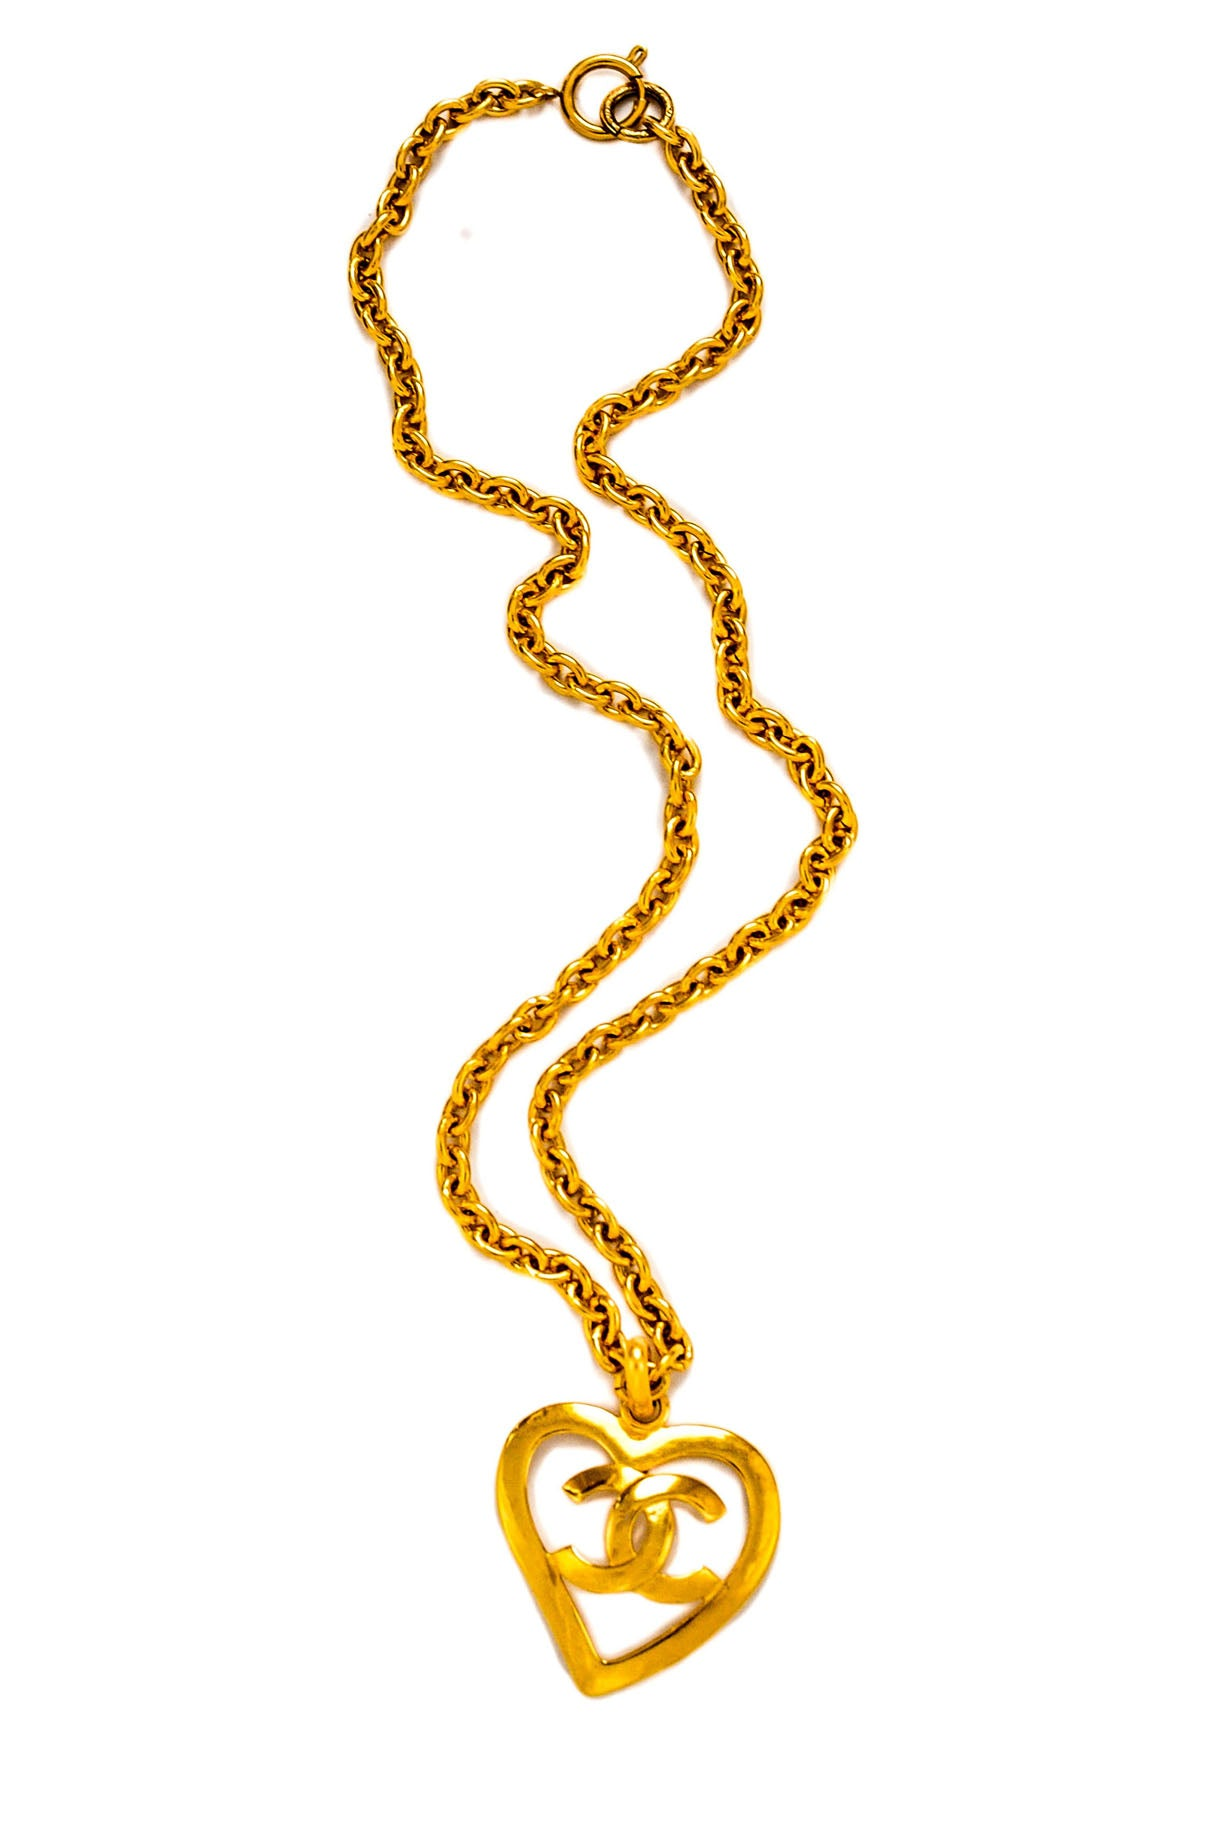 Vintage Chanel CC Heart Pendant Necklace from Sweet and Spark